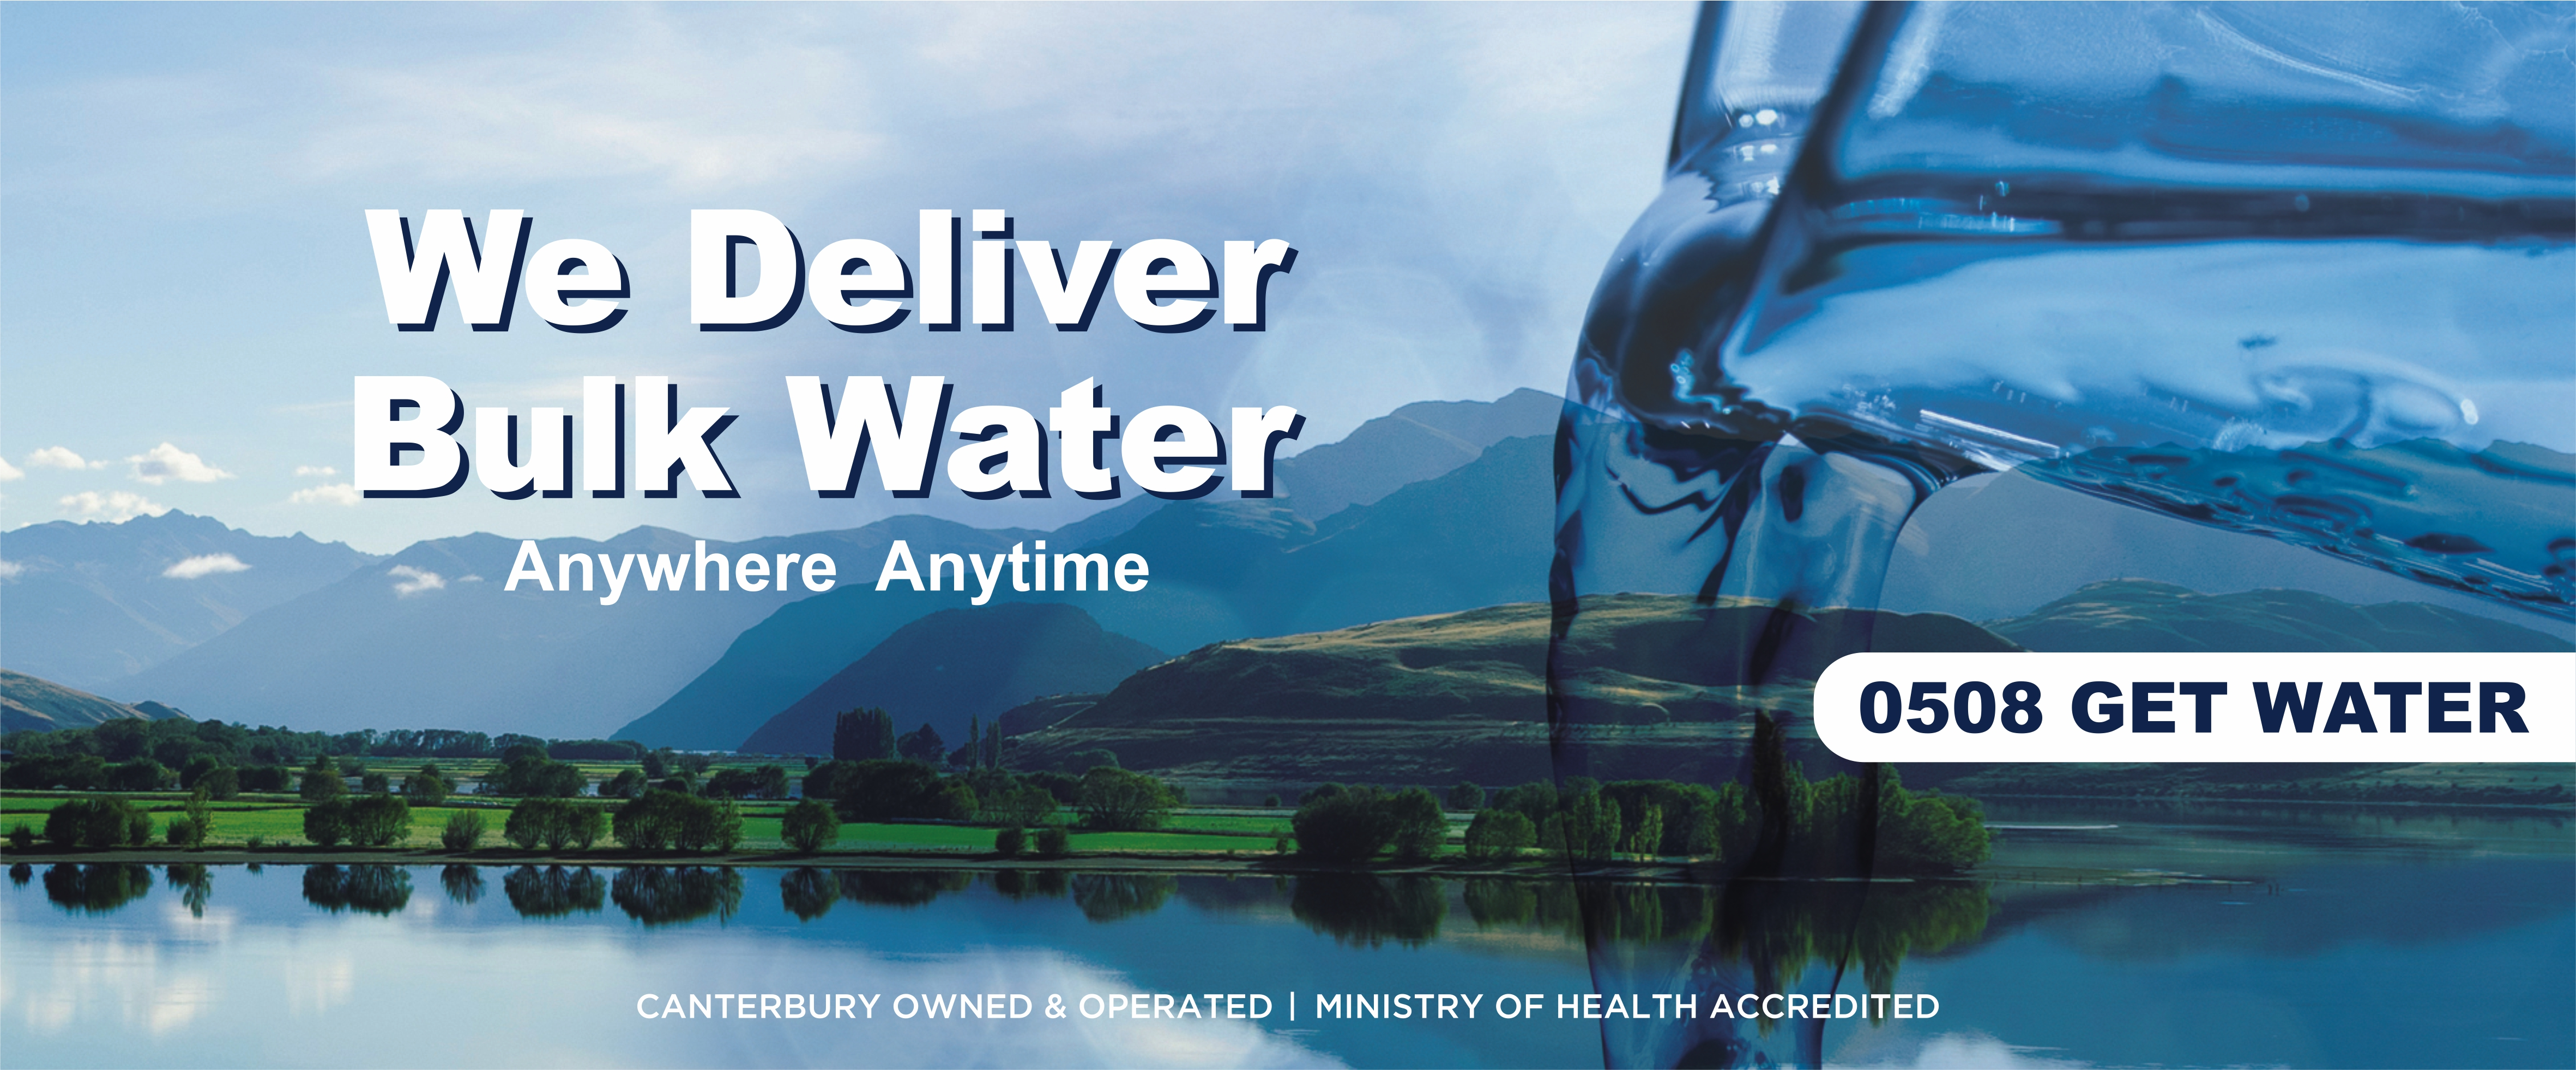 Bulk water delivery home page